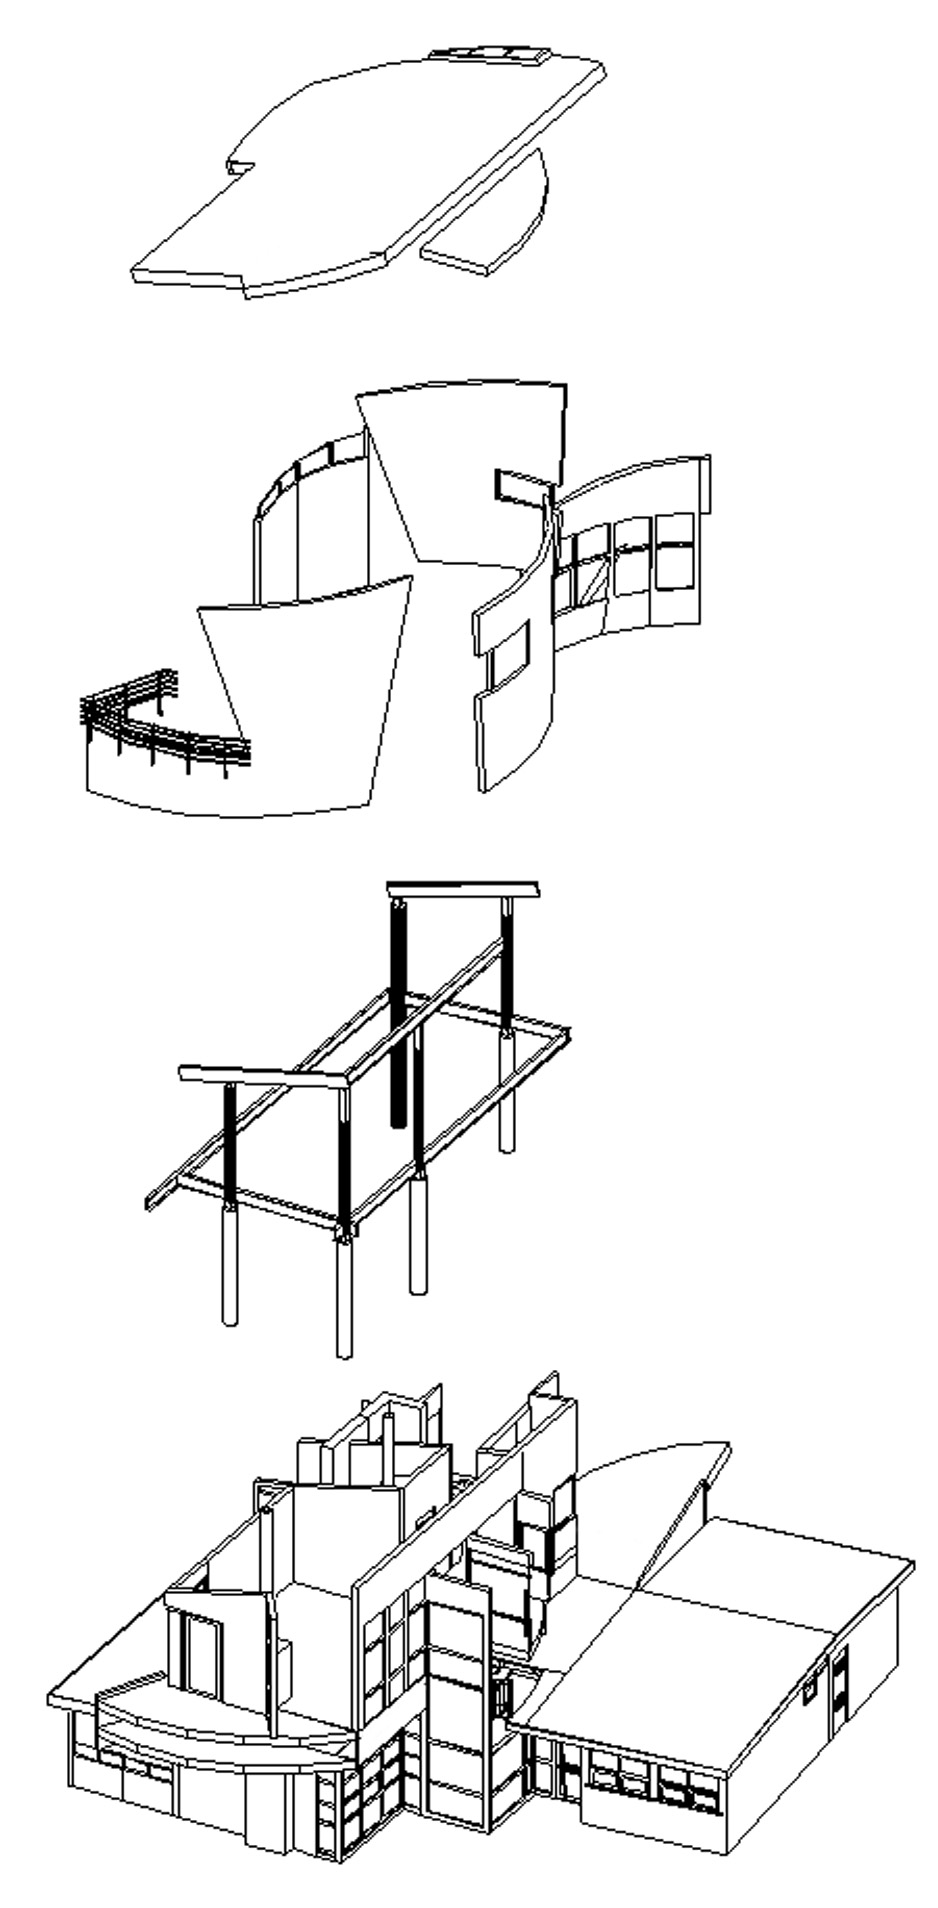 hight resolution of diagram of the essential architectural components of the house